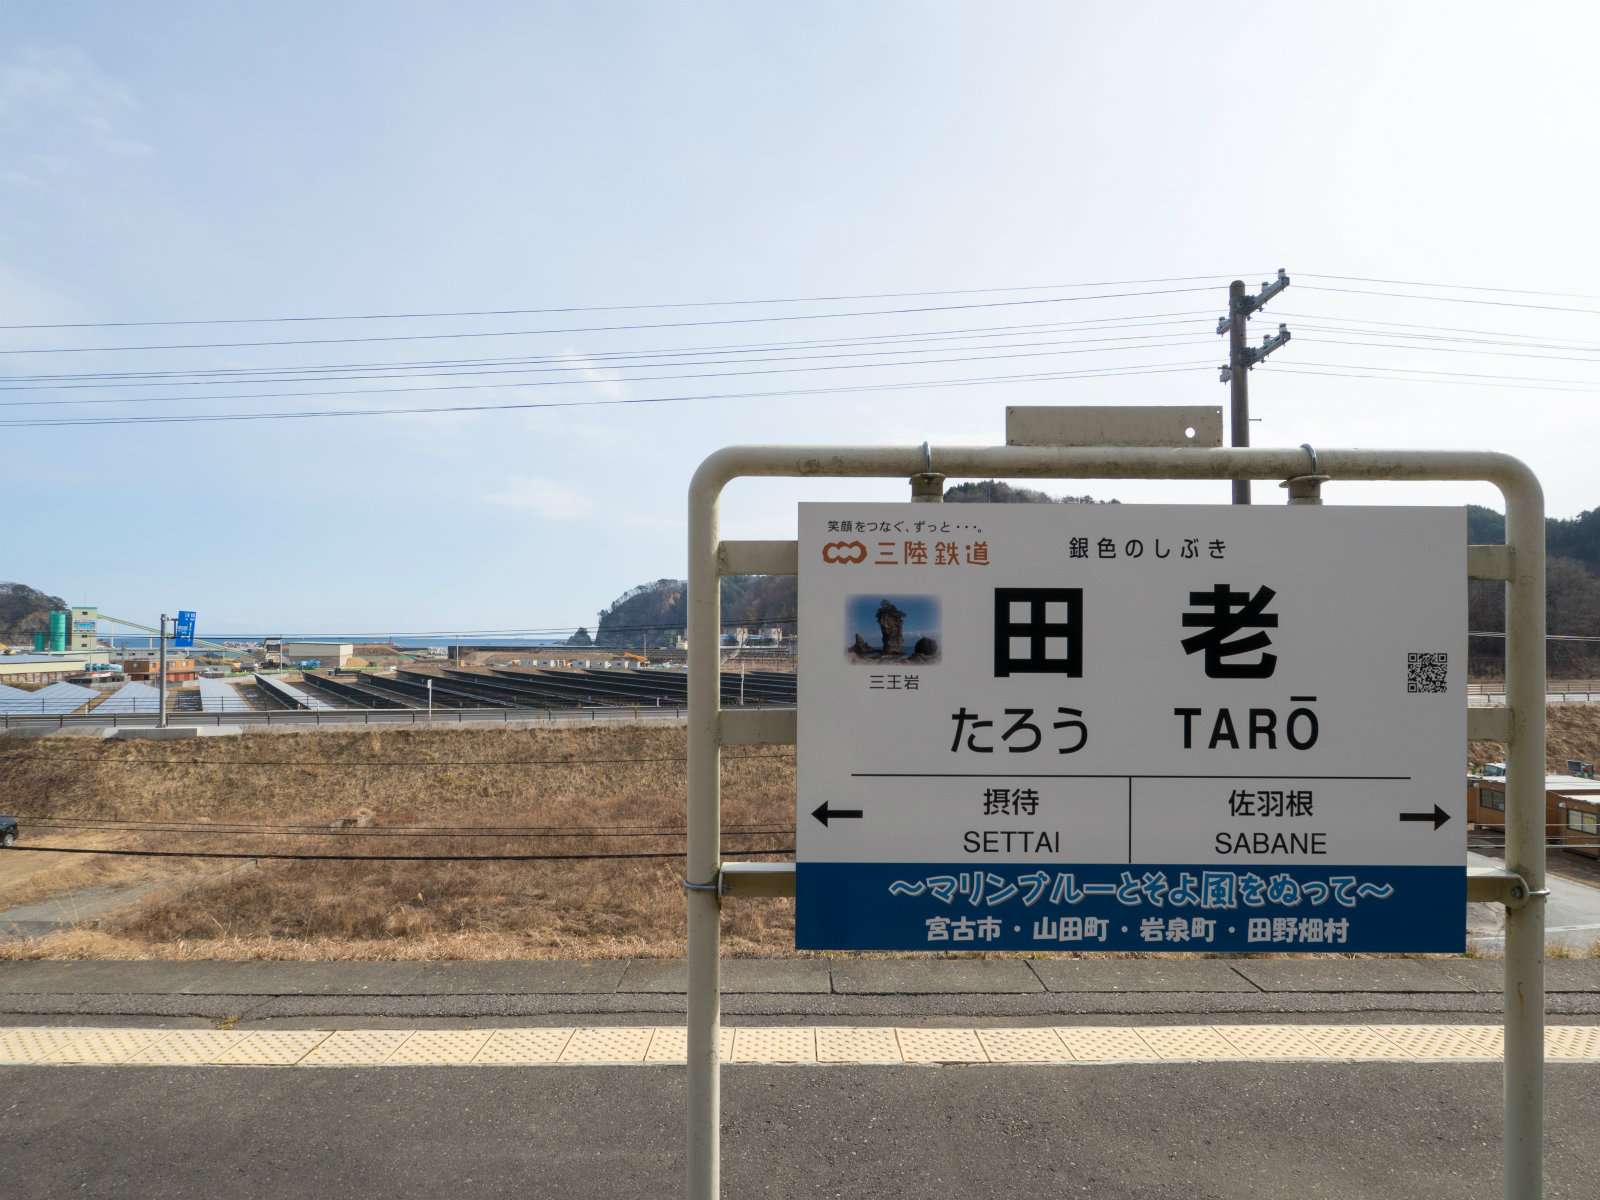 http://seaside-station.com/wpbin/wp-content/uploads/taro_02.jpg